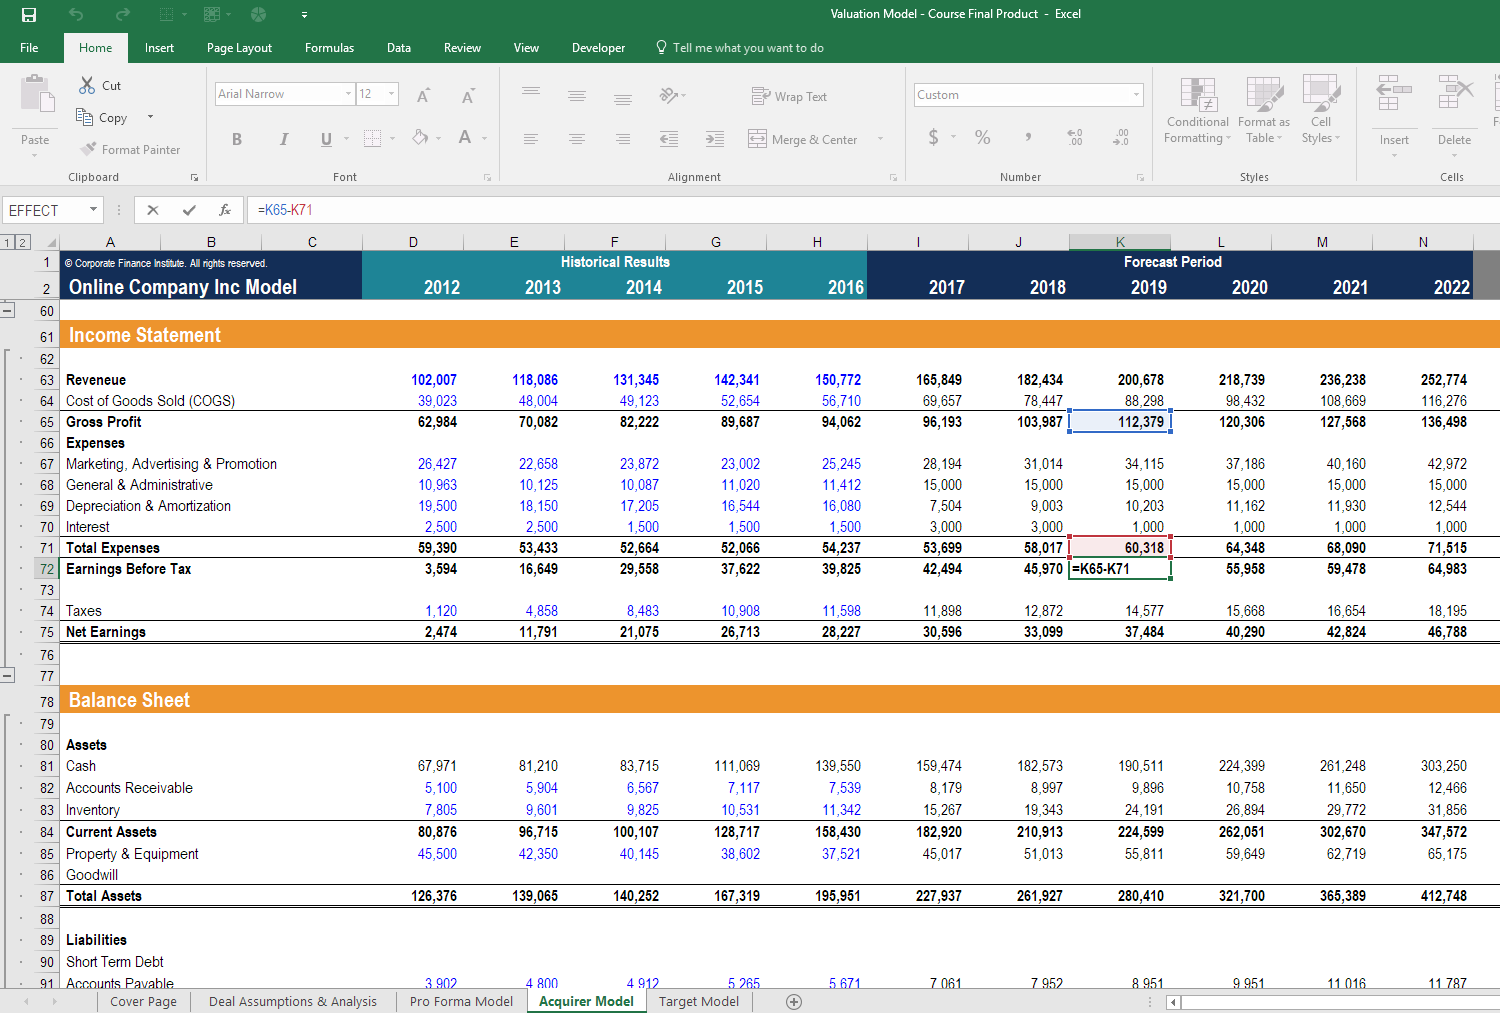 Intoduction to Financial Modeling | Financial Modeling ...